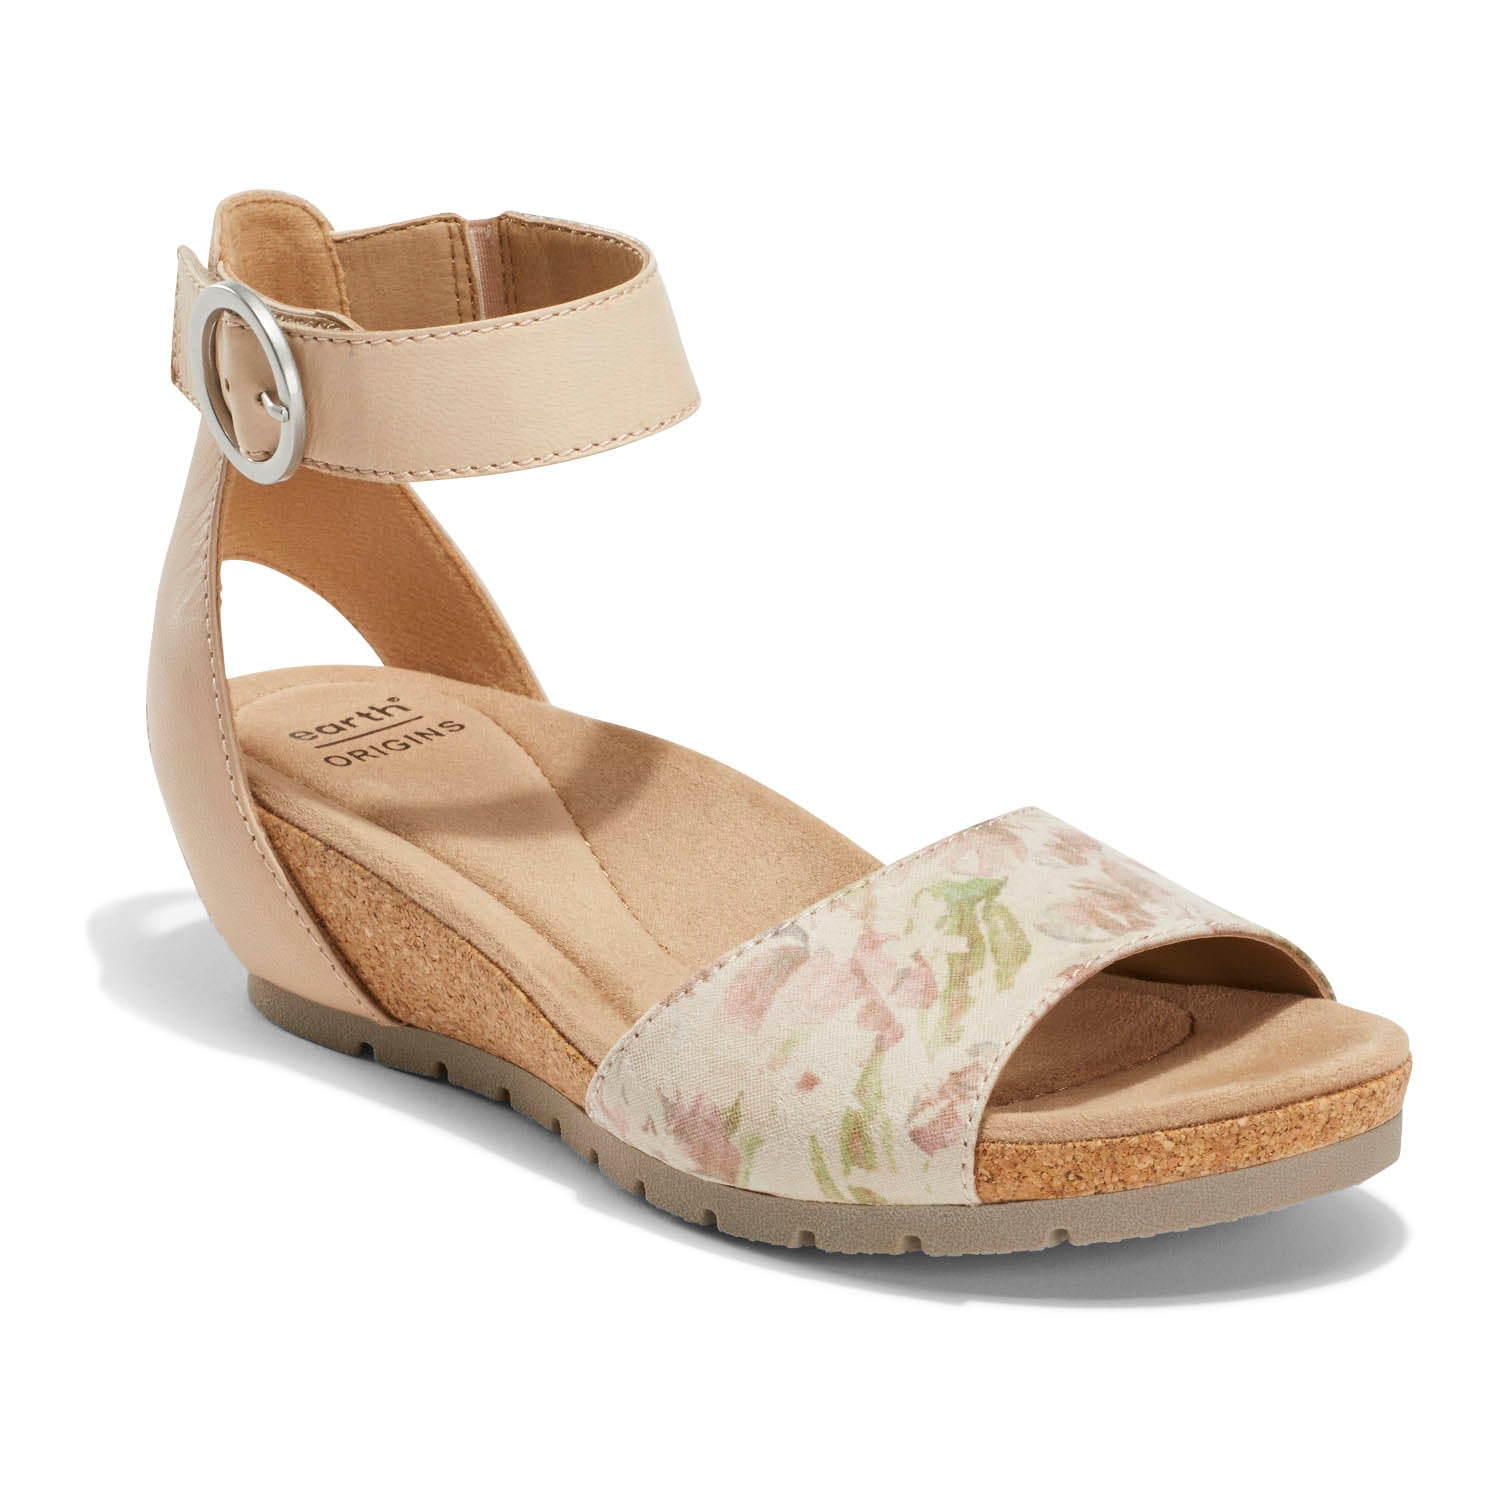 Strappy and elegant with its wrap-around ankle styling and cork wedge, it s the perfect sandal for dressier occasions when comfort is still a priority. Earth Origins Powerpath footbed design will add a spring to your step wherever the day (or night) takes you.